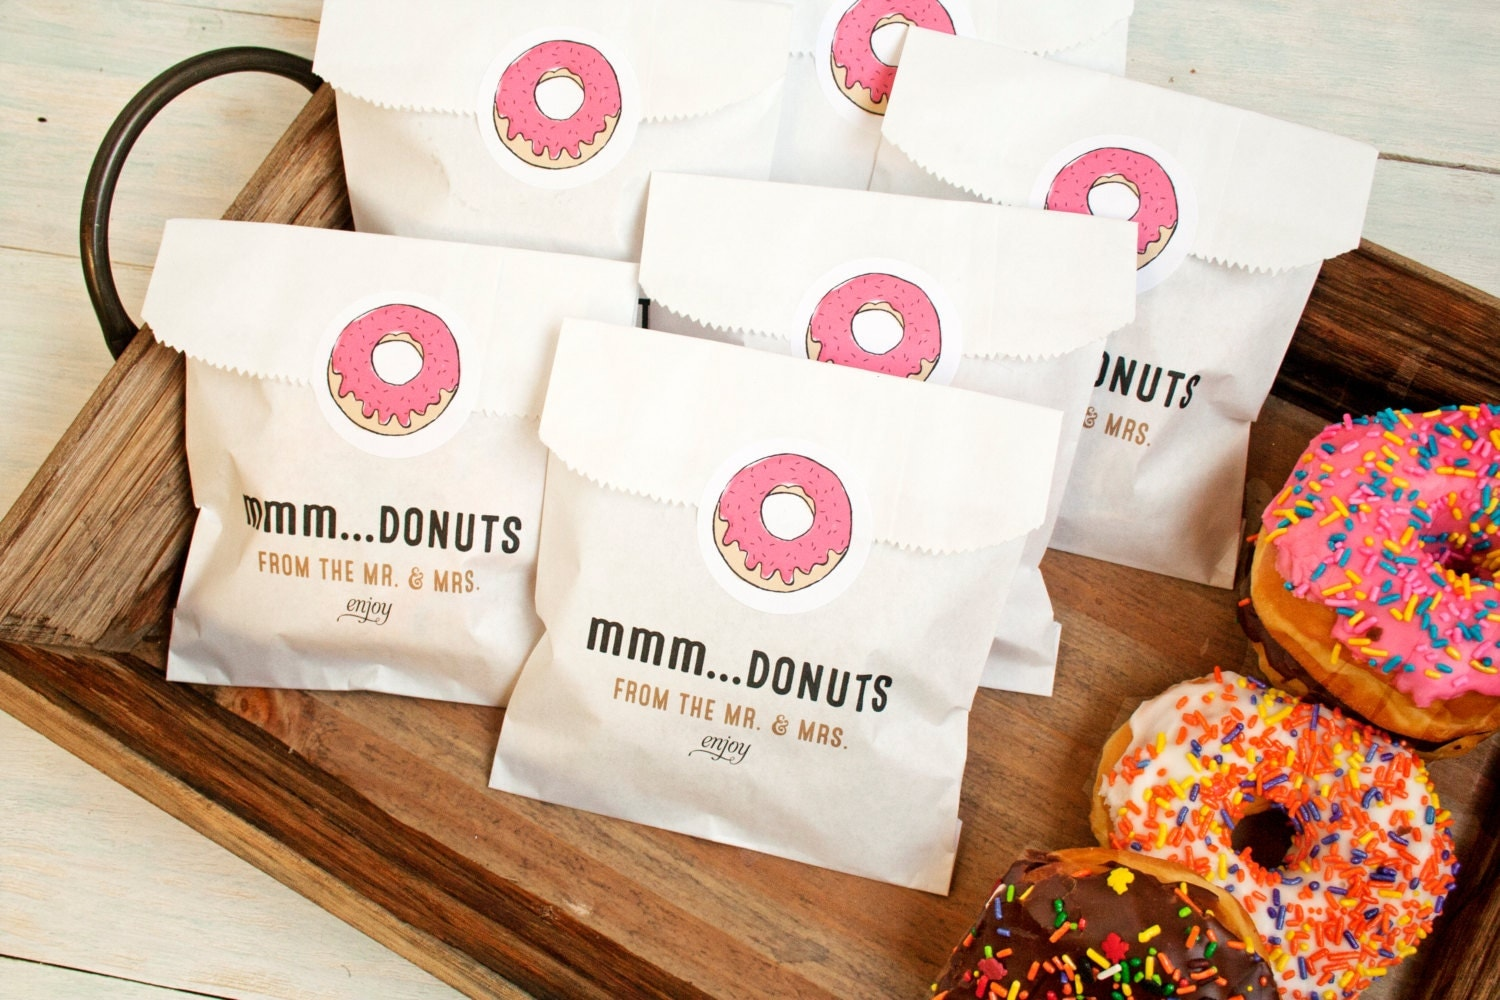 Donut Wedding Favor Boxes: Wedding favors your guests will be ...